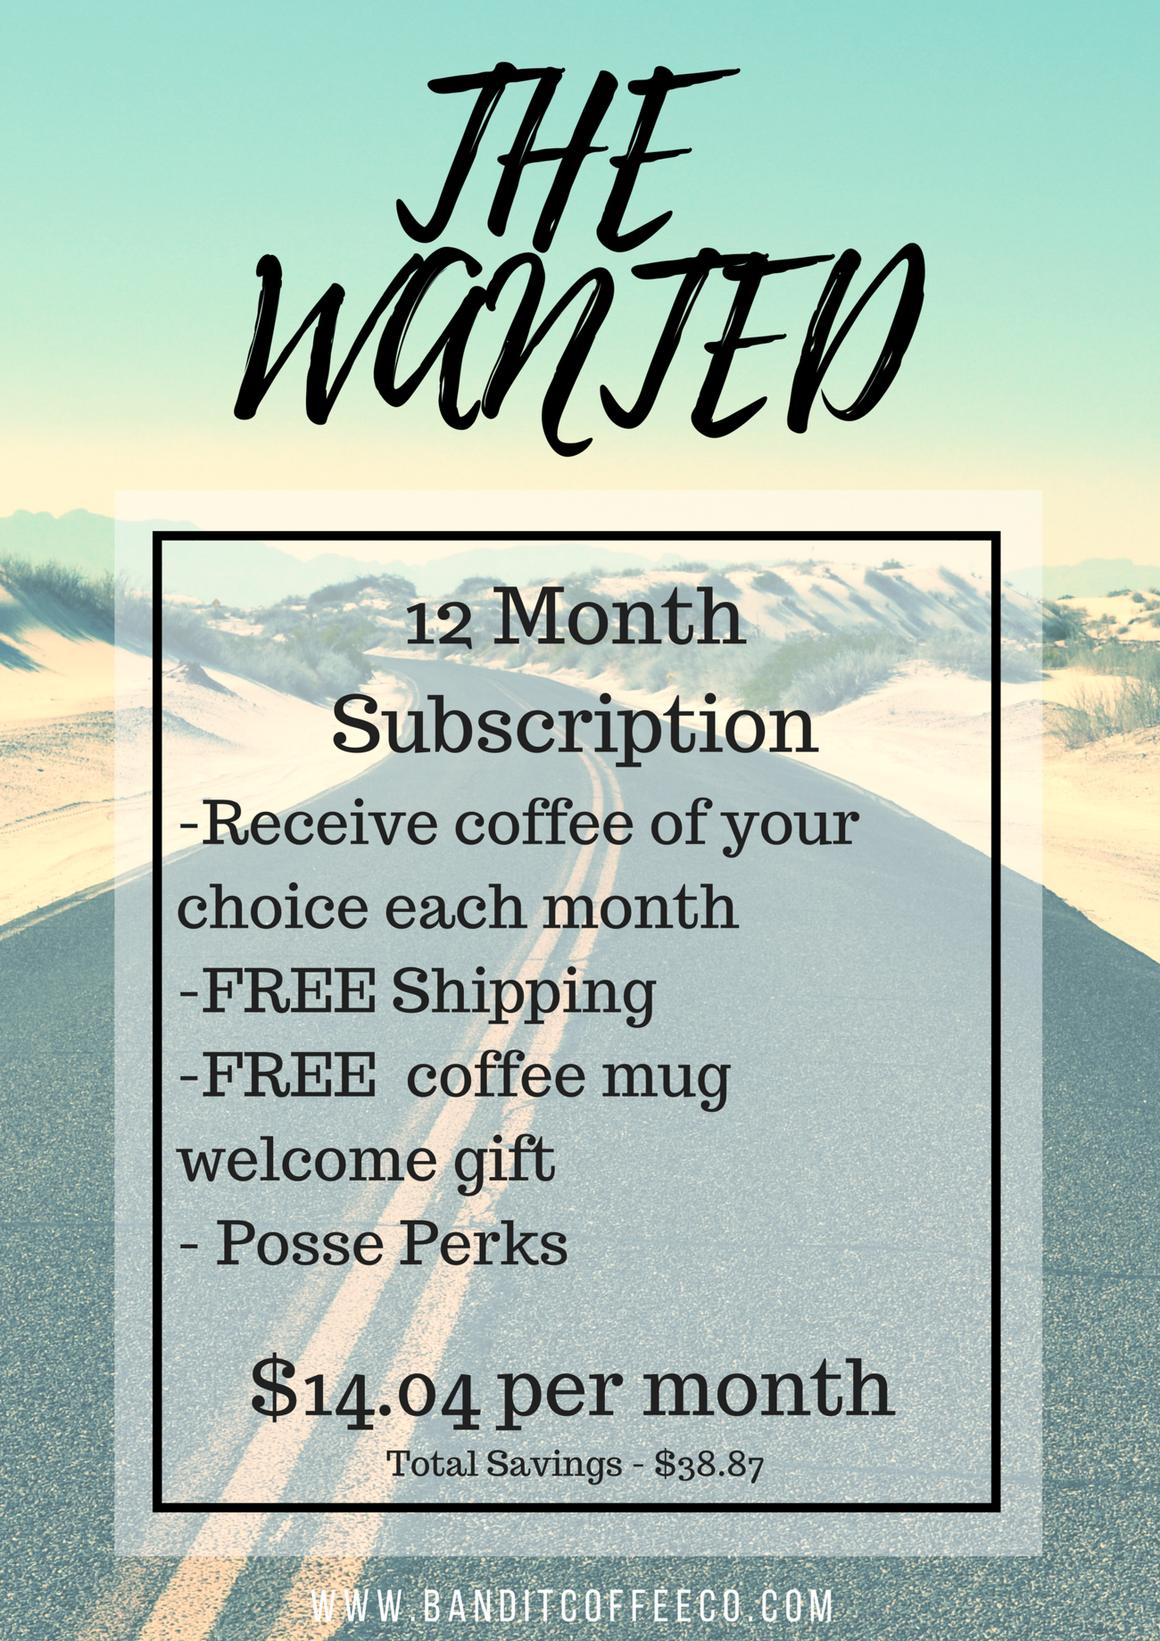 THE WANTED - Bandit Coffee Co. Coffee - low acidity coffee, Coffee - subscription coffee, THE WANTED - luxury coffee, Coffee - on-demand coffee, Coffee - instant coffee,